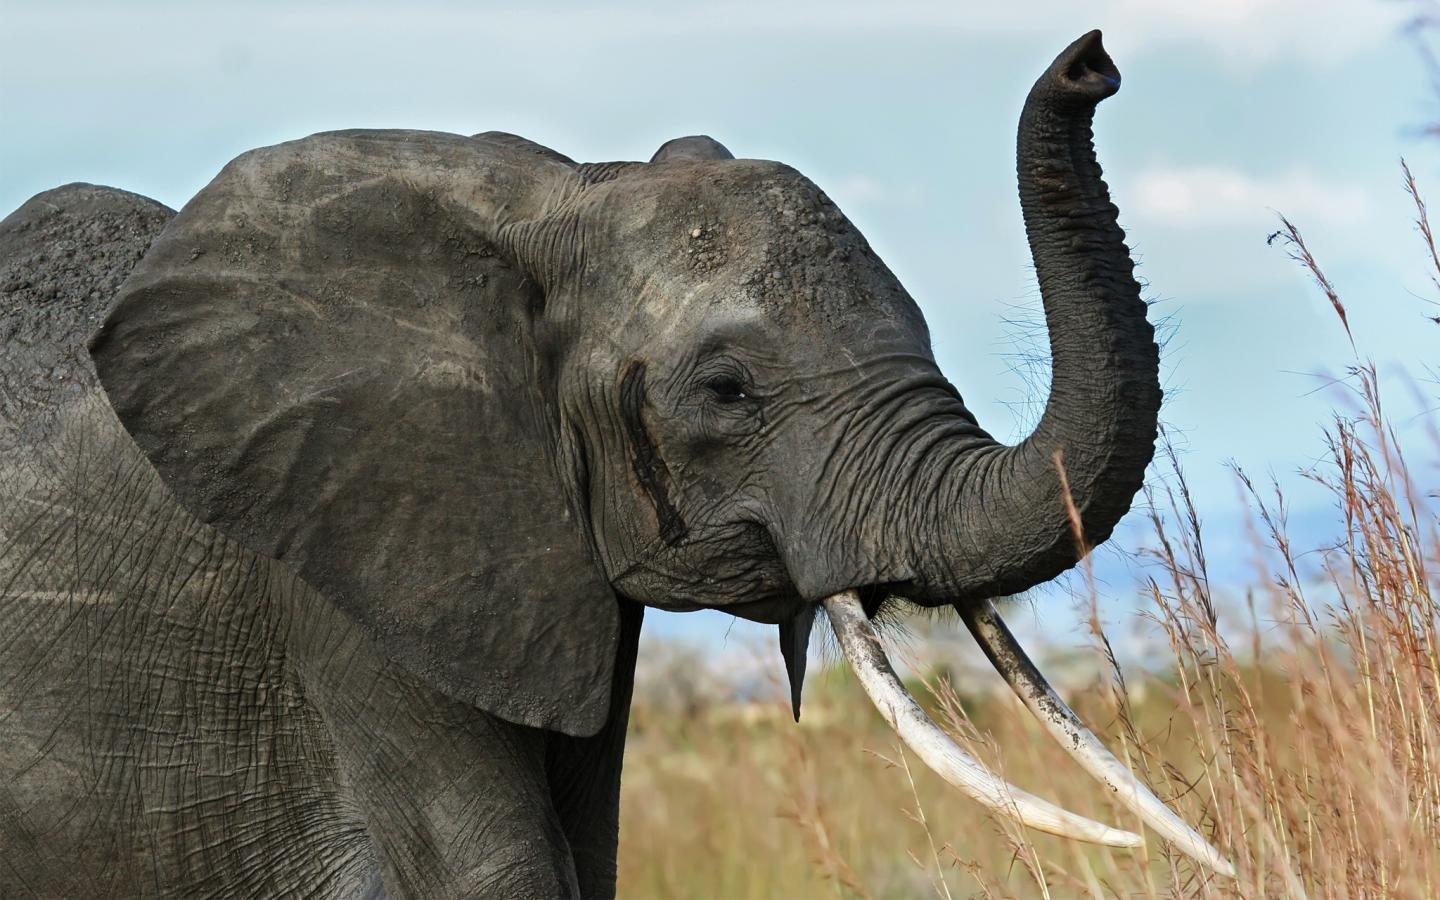 Awesome Elephant free wallpaper ID:132589 for hd 1440x900 desktop